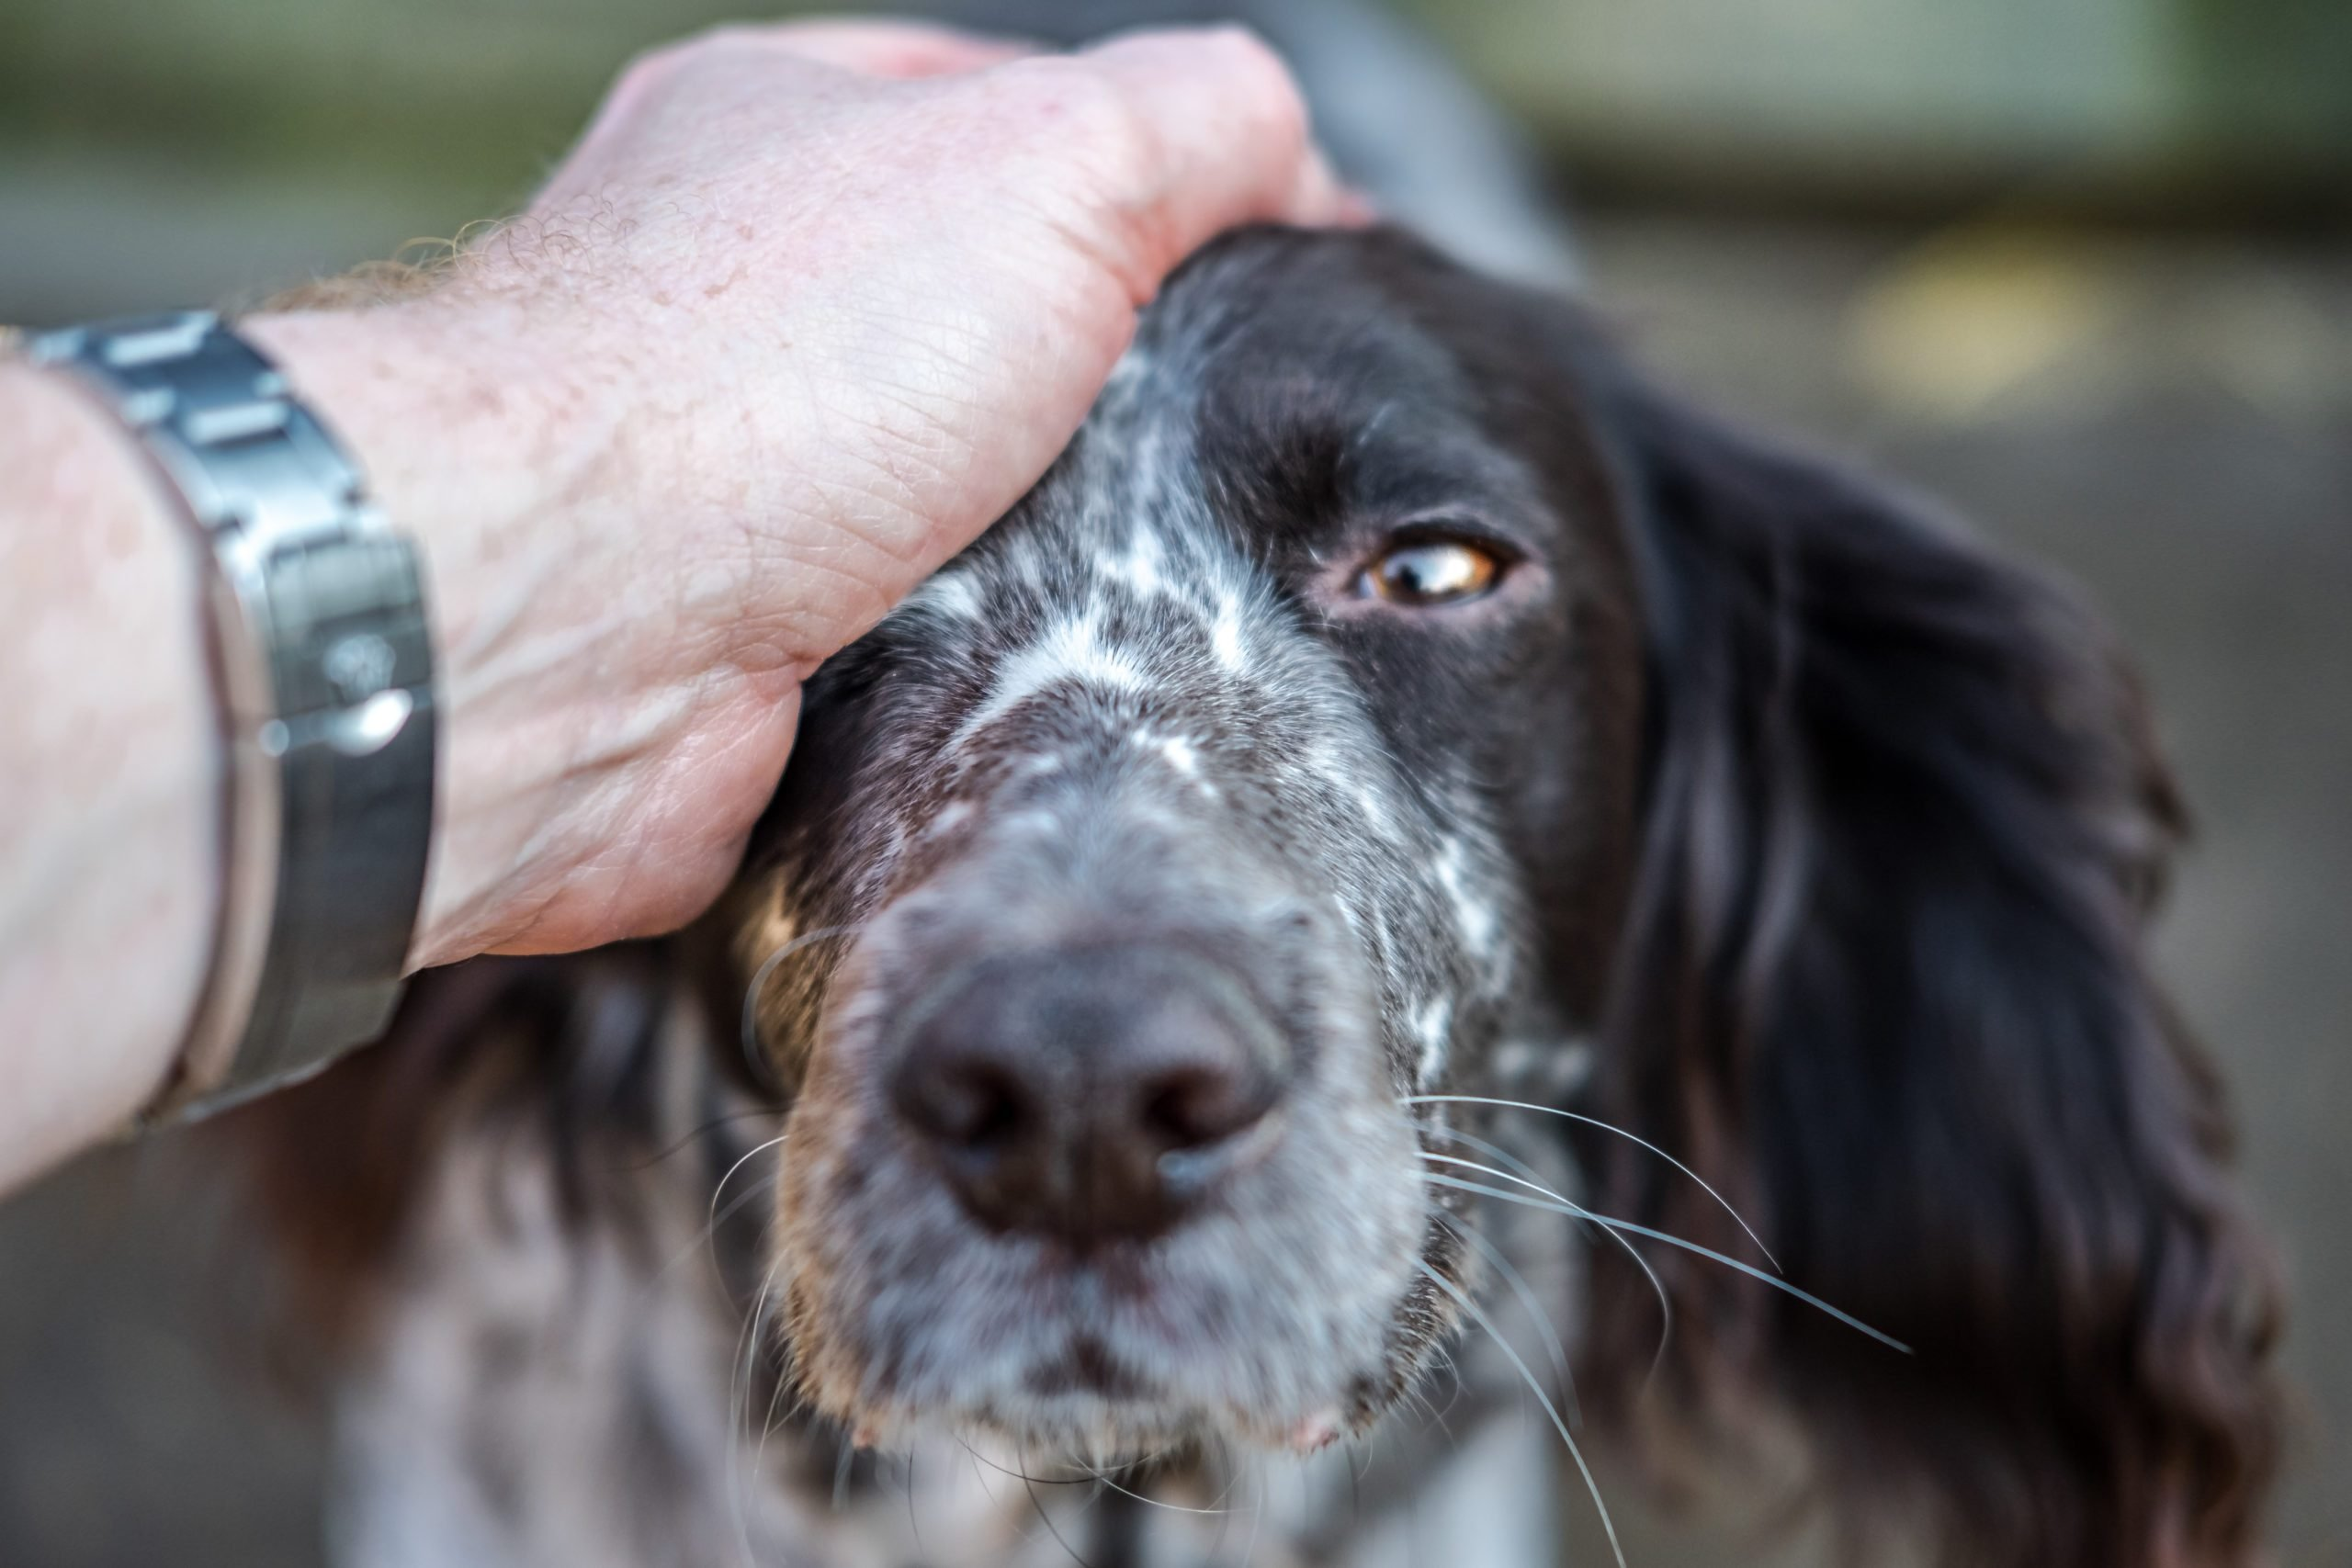 Close-up, shallow focus of part of the head of an adult Spaniel dog looking at the photographer.